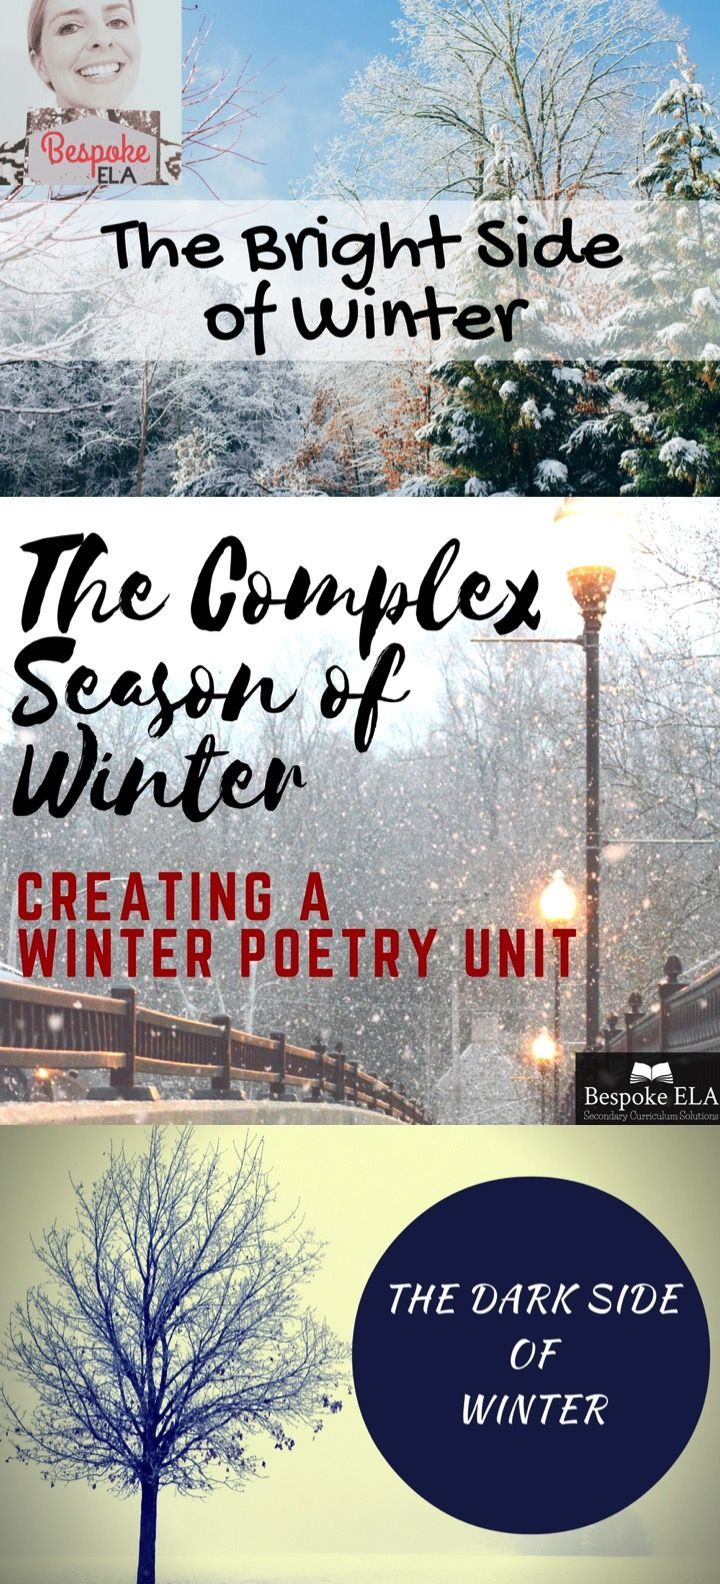 This blog shares my reflections on constructing a Winter Poetry Unit as well as my short explications of the TEN POEMS included in the Bespoke ELA Winter Poetry Unit. This is an excellent unit for December, January, and February that looks at the complex relationship of man's relationship with winter.